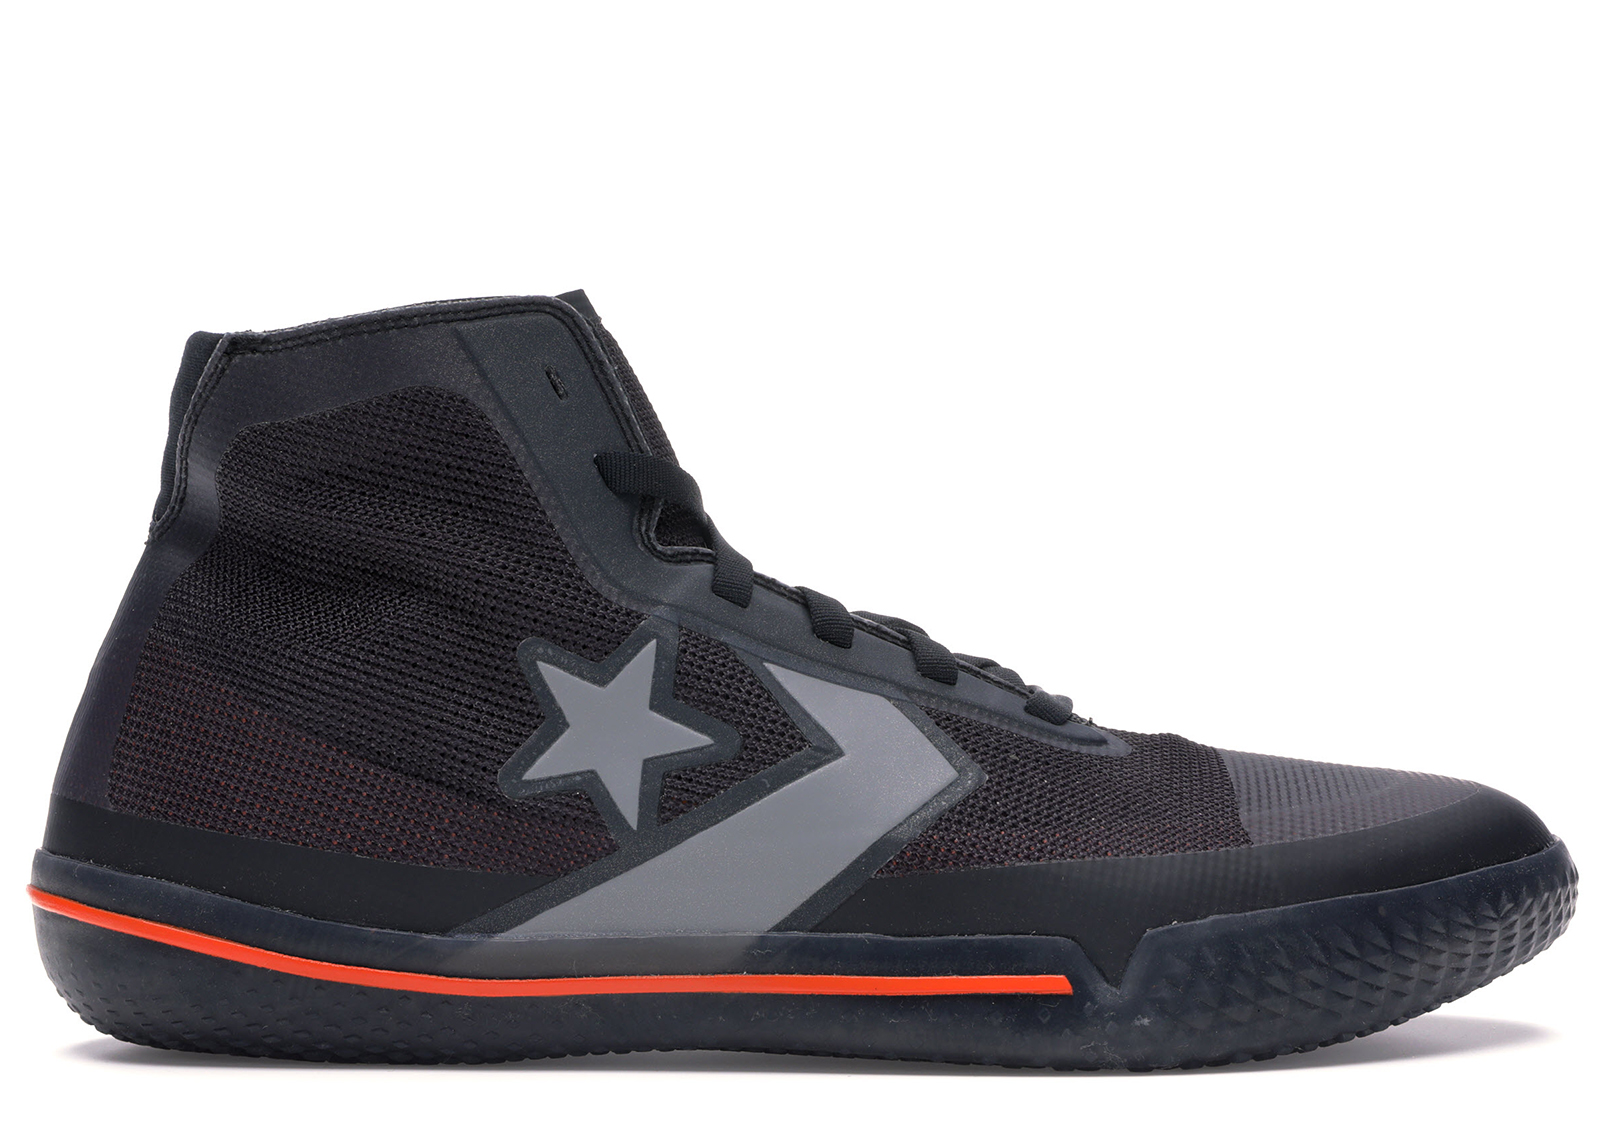 Converse All Star Pro BB Black Silver Orange